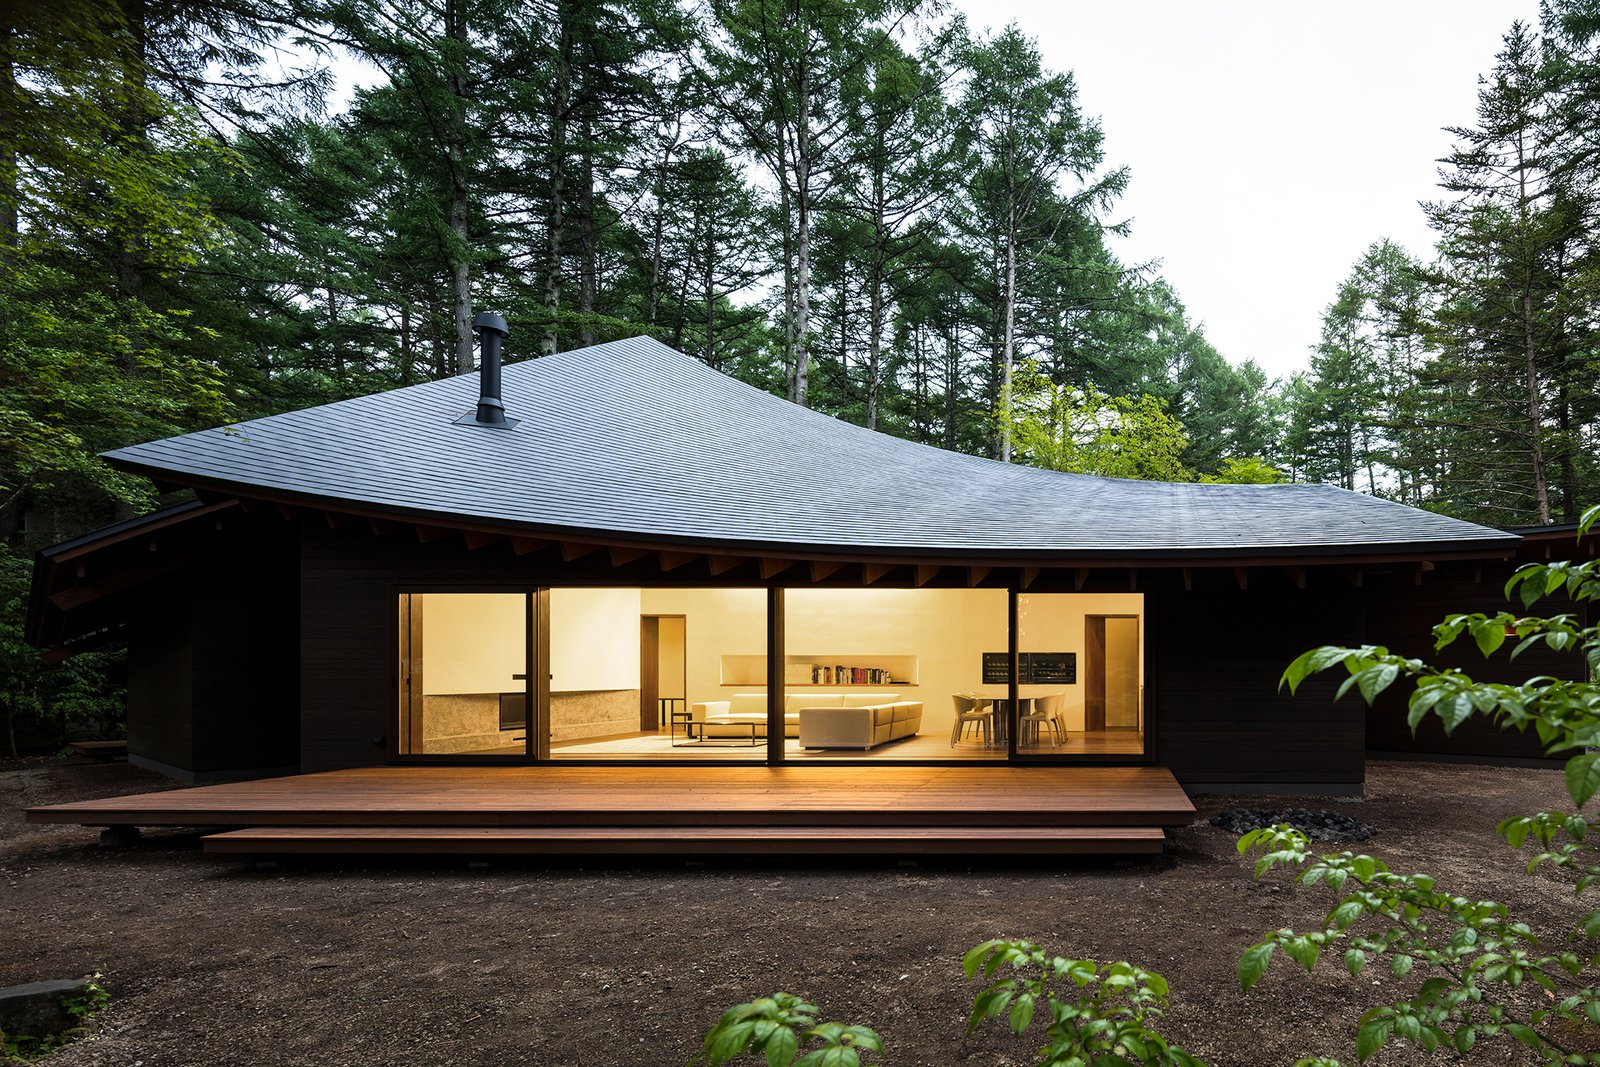 Articles about japanese inspired summer retreat on Dwell.com